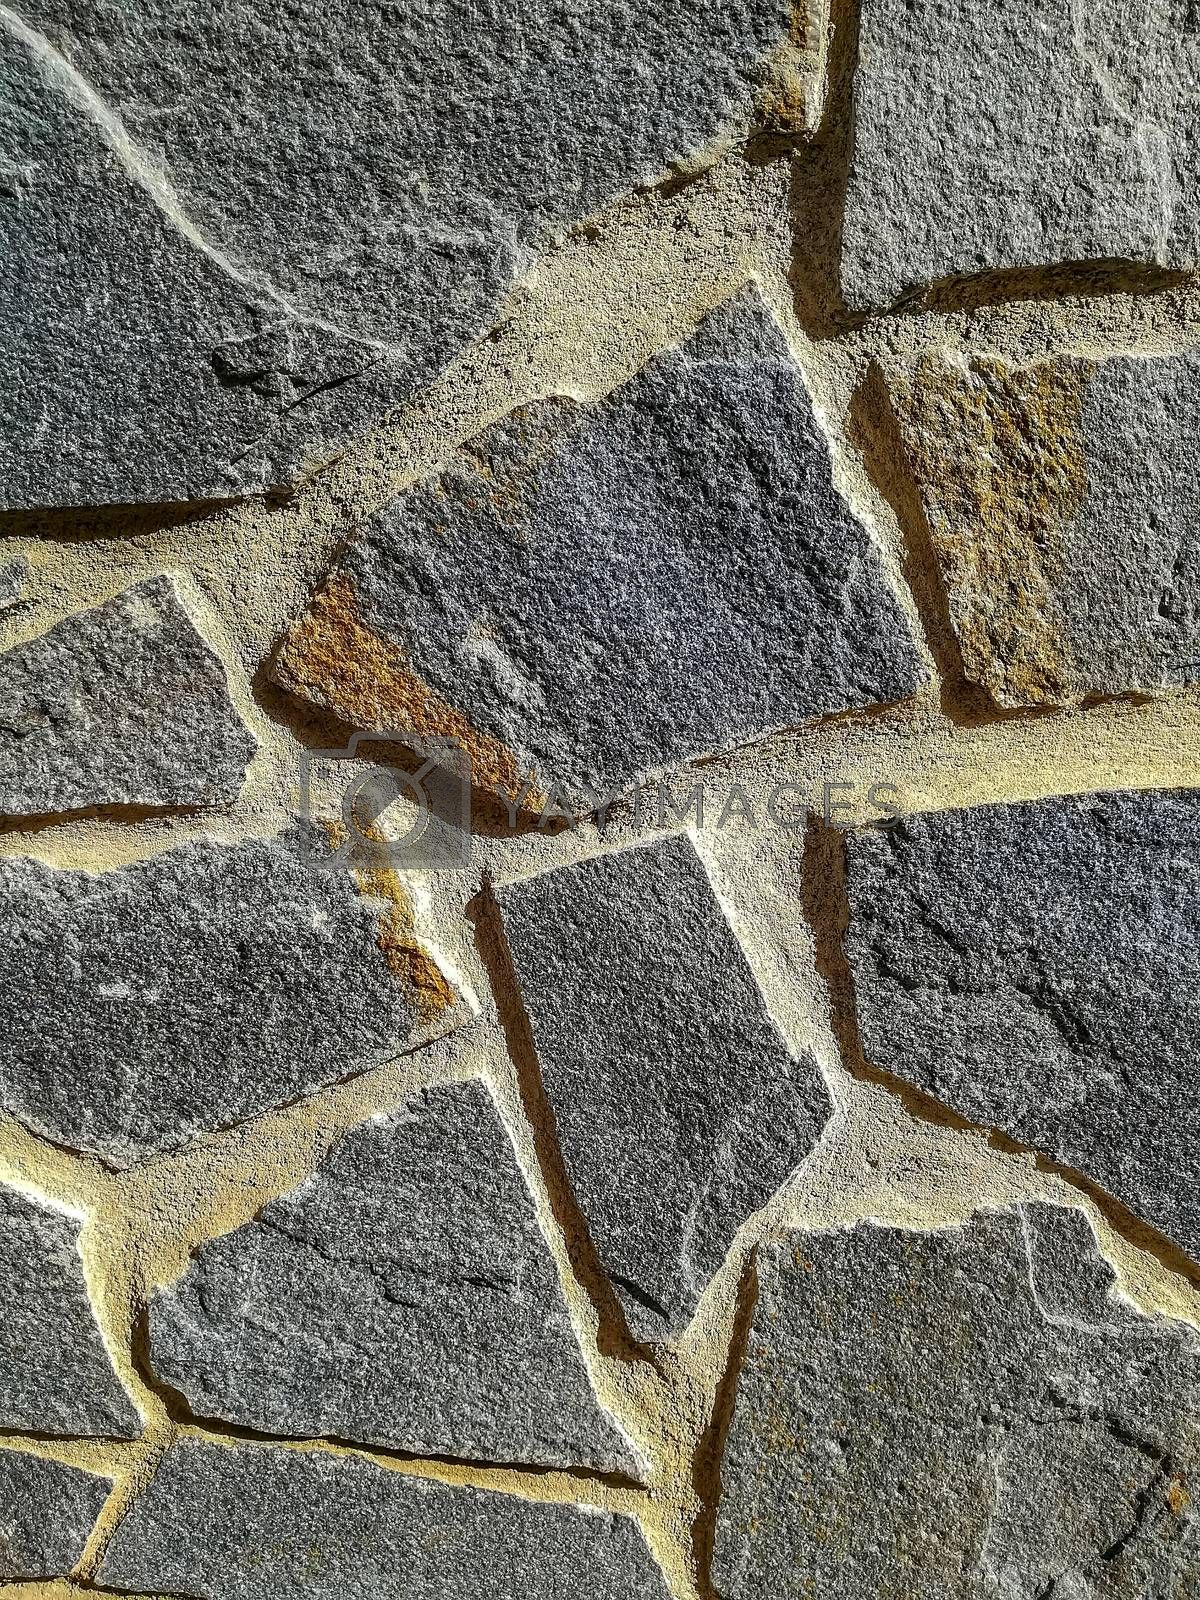 Facade of natural stone and gray cement